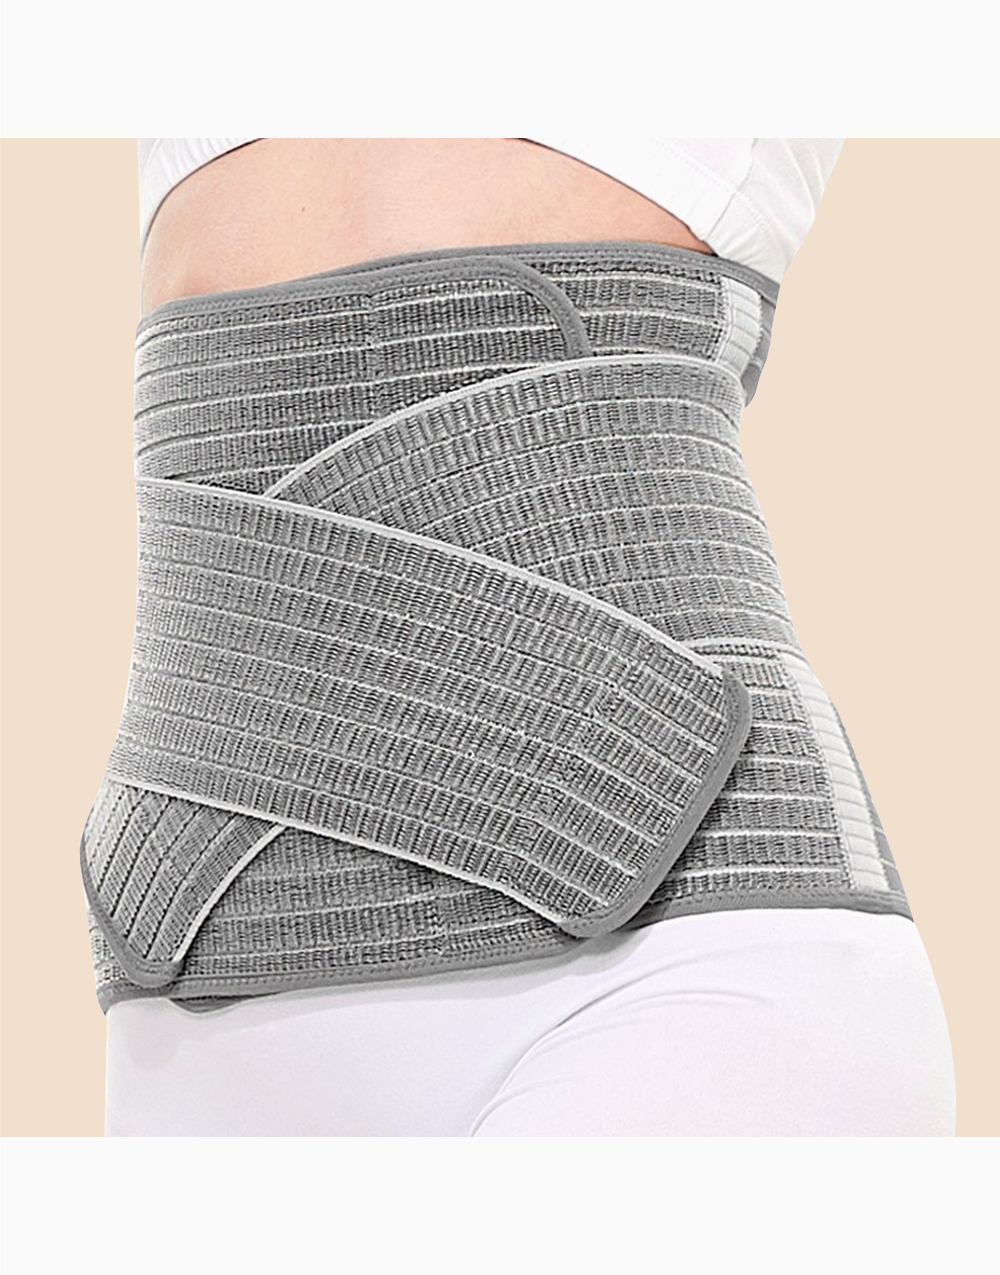 Nano Bamboo Postnatal Recovery & Support Belly Band (Charcoal Grey) by Mamaway | S-M